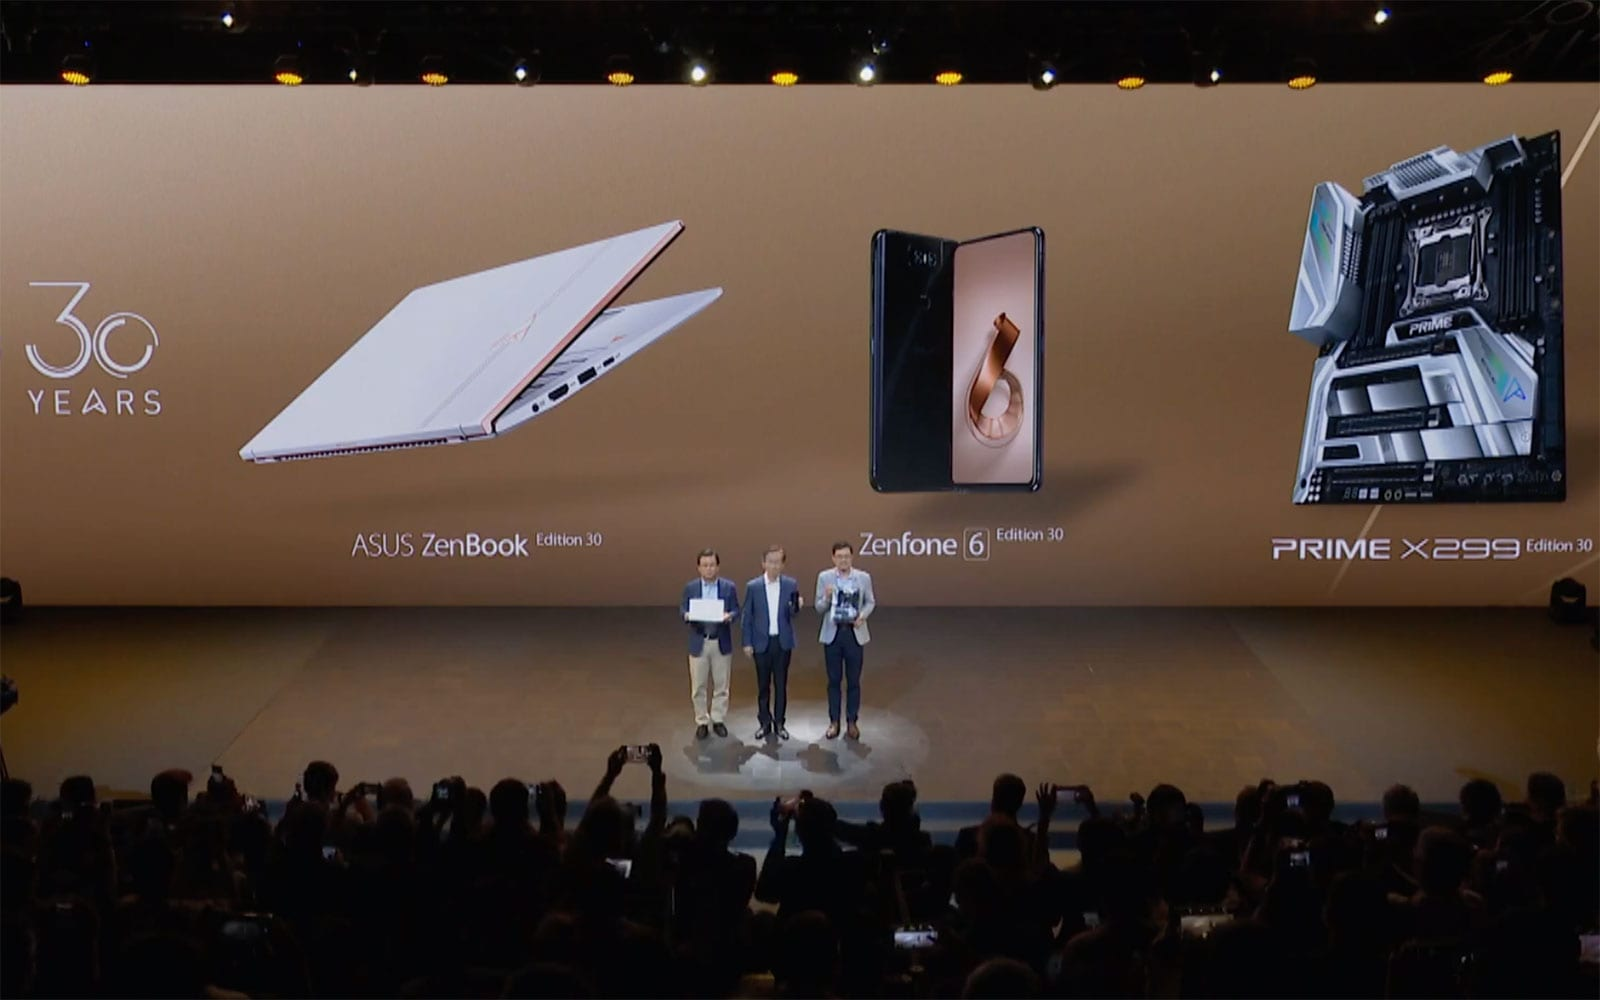 ASUS releases a 30th anniversary edition ZenFone 6 and ZenBook